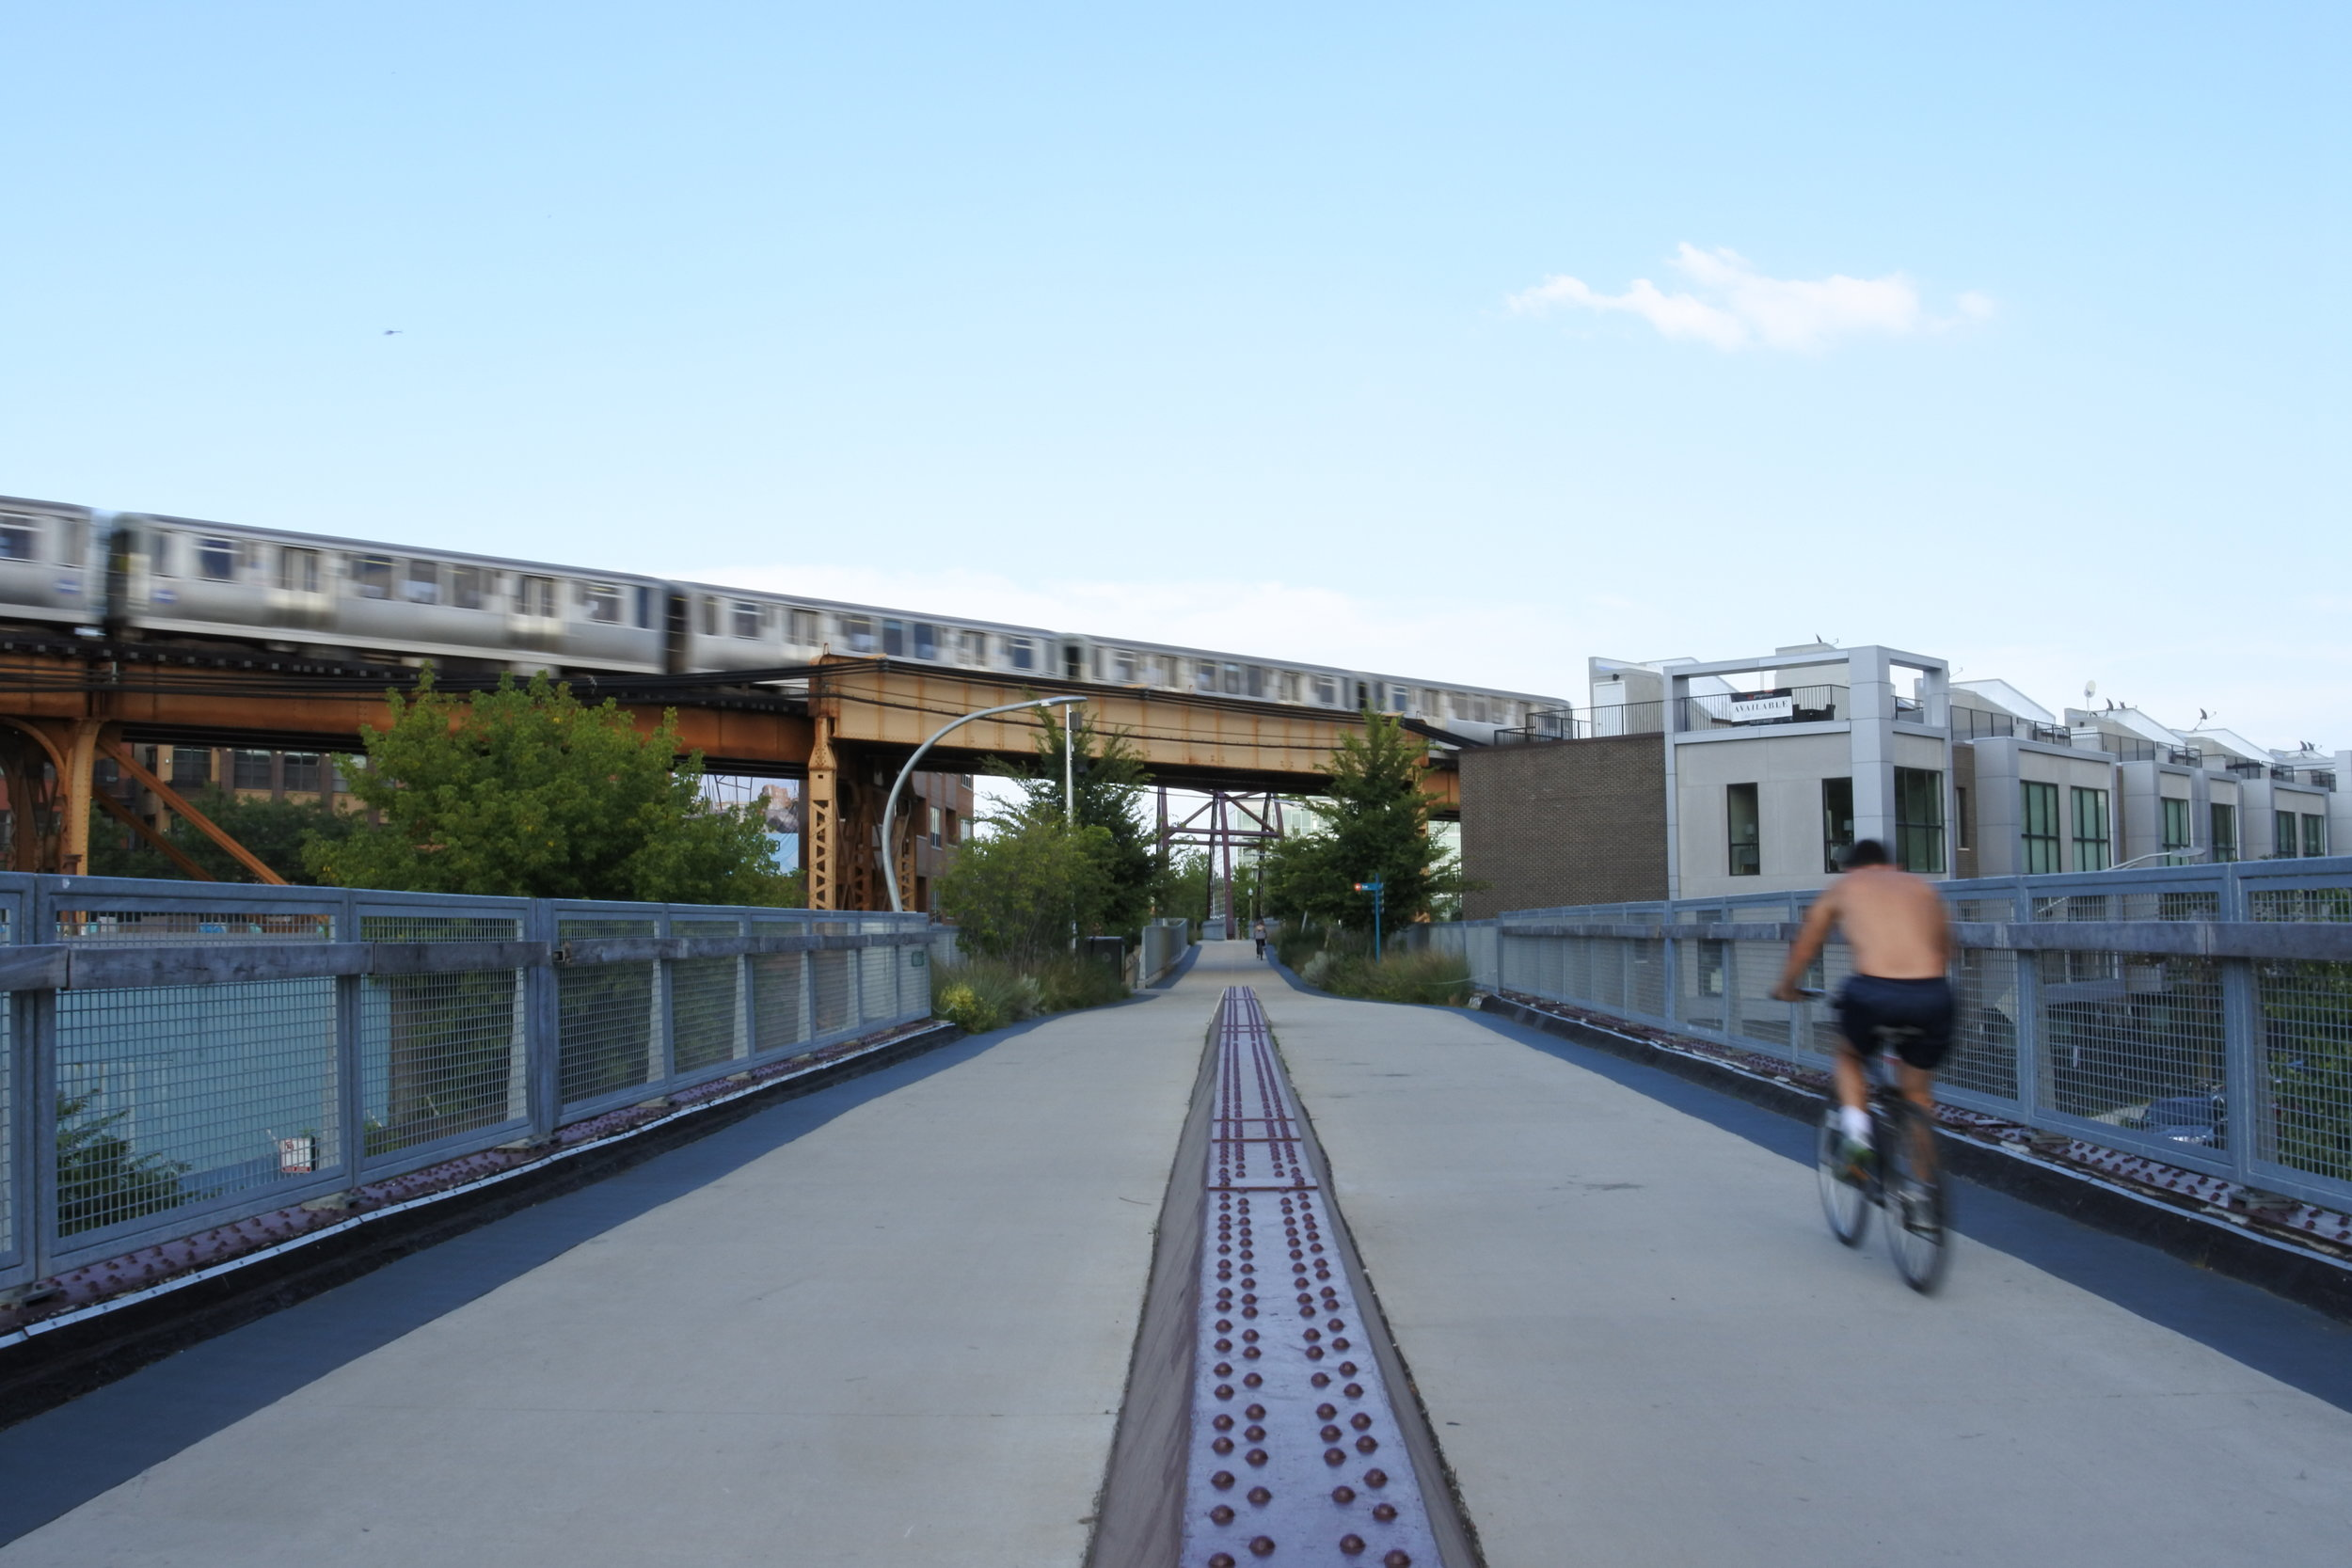 A biker on the 606, a former railroad line converted to public park.